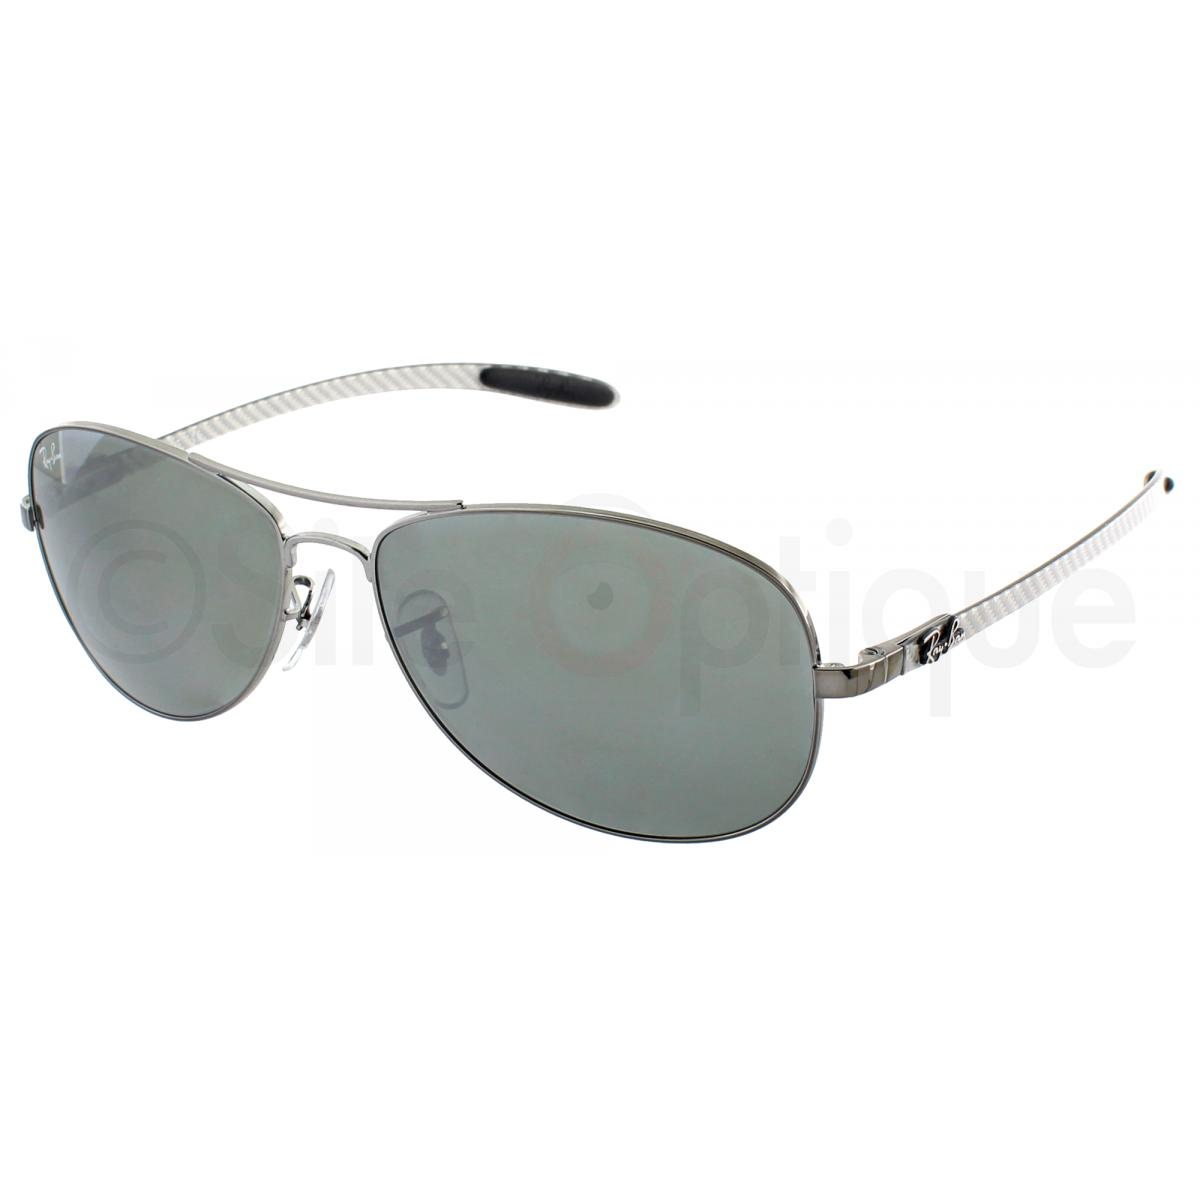 1422028c1a705a Ray Ban - RB 8301 004-40 – Site optique